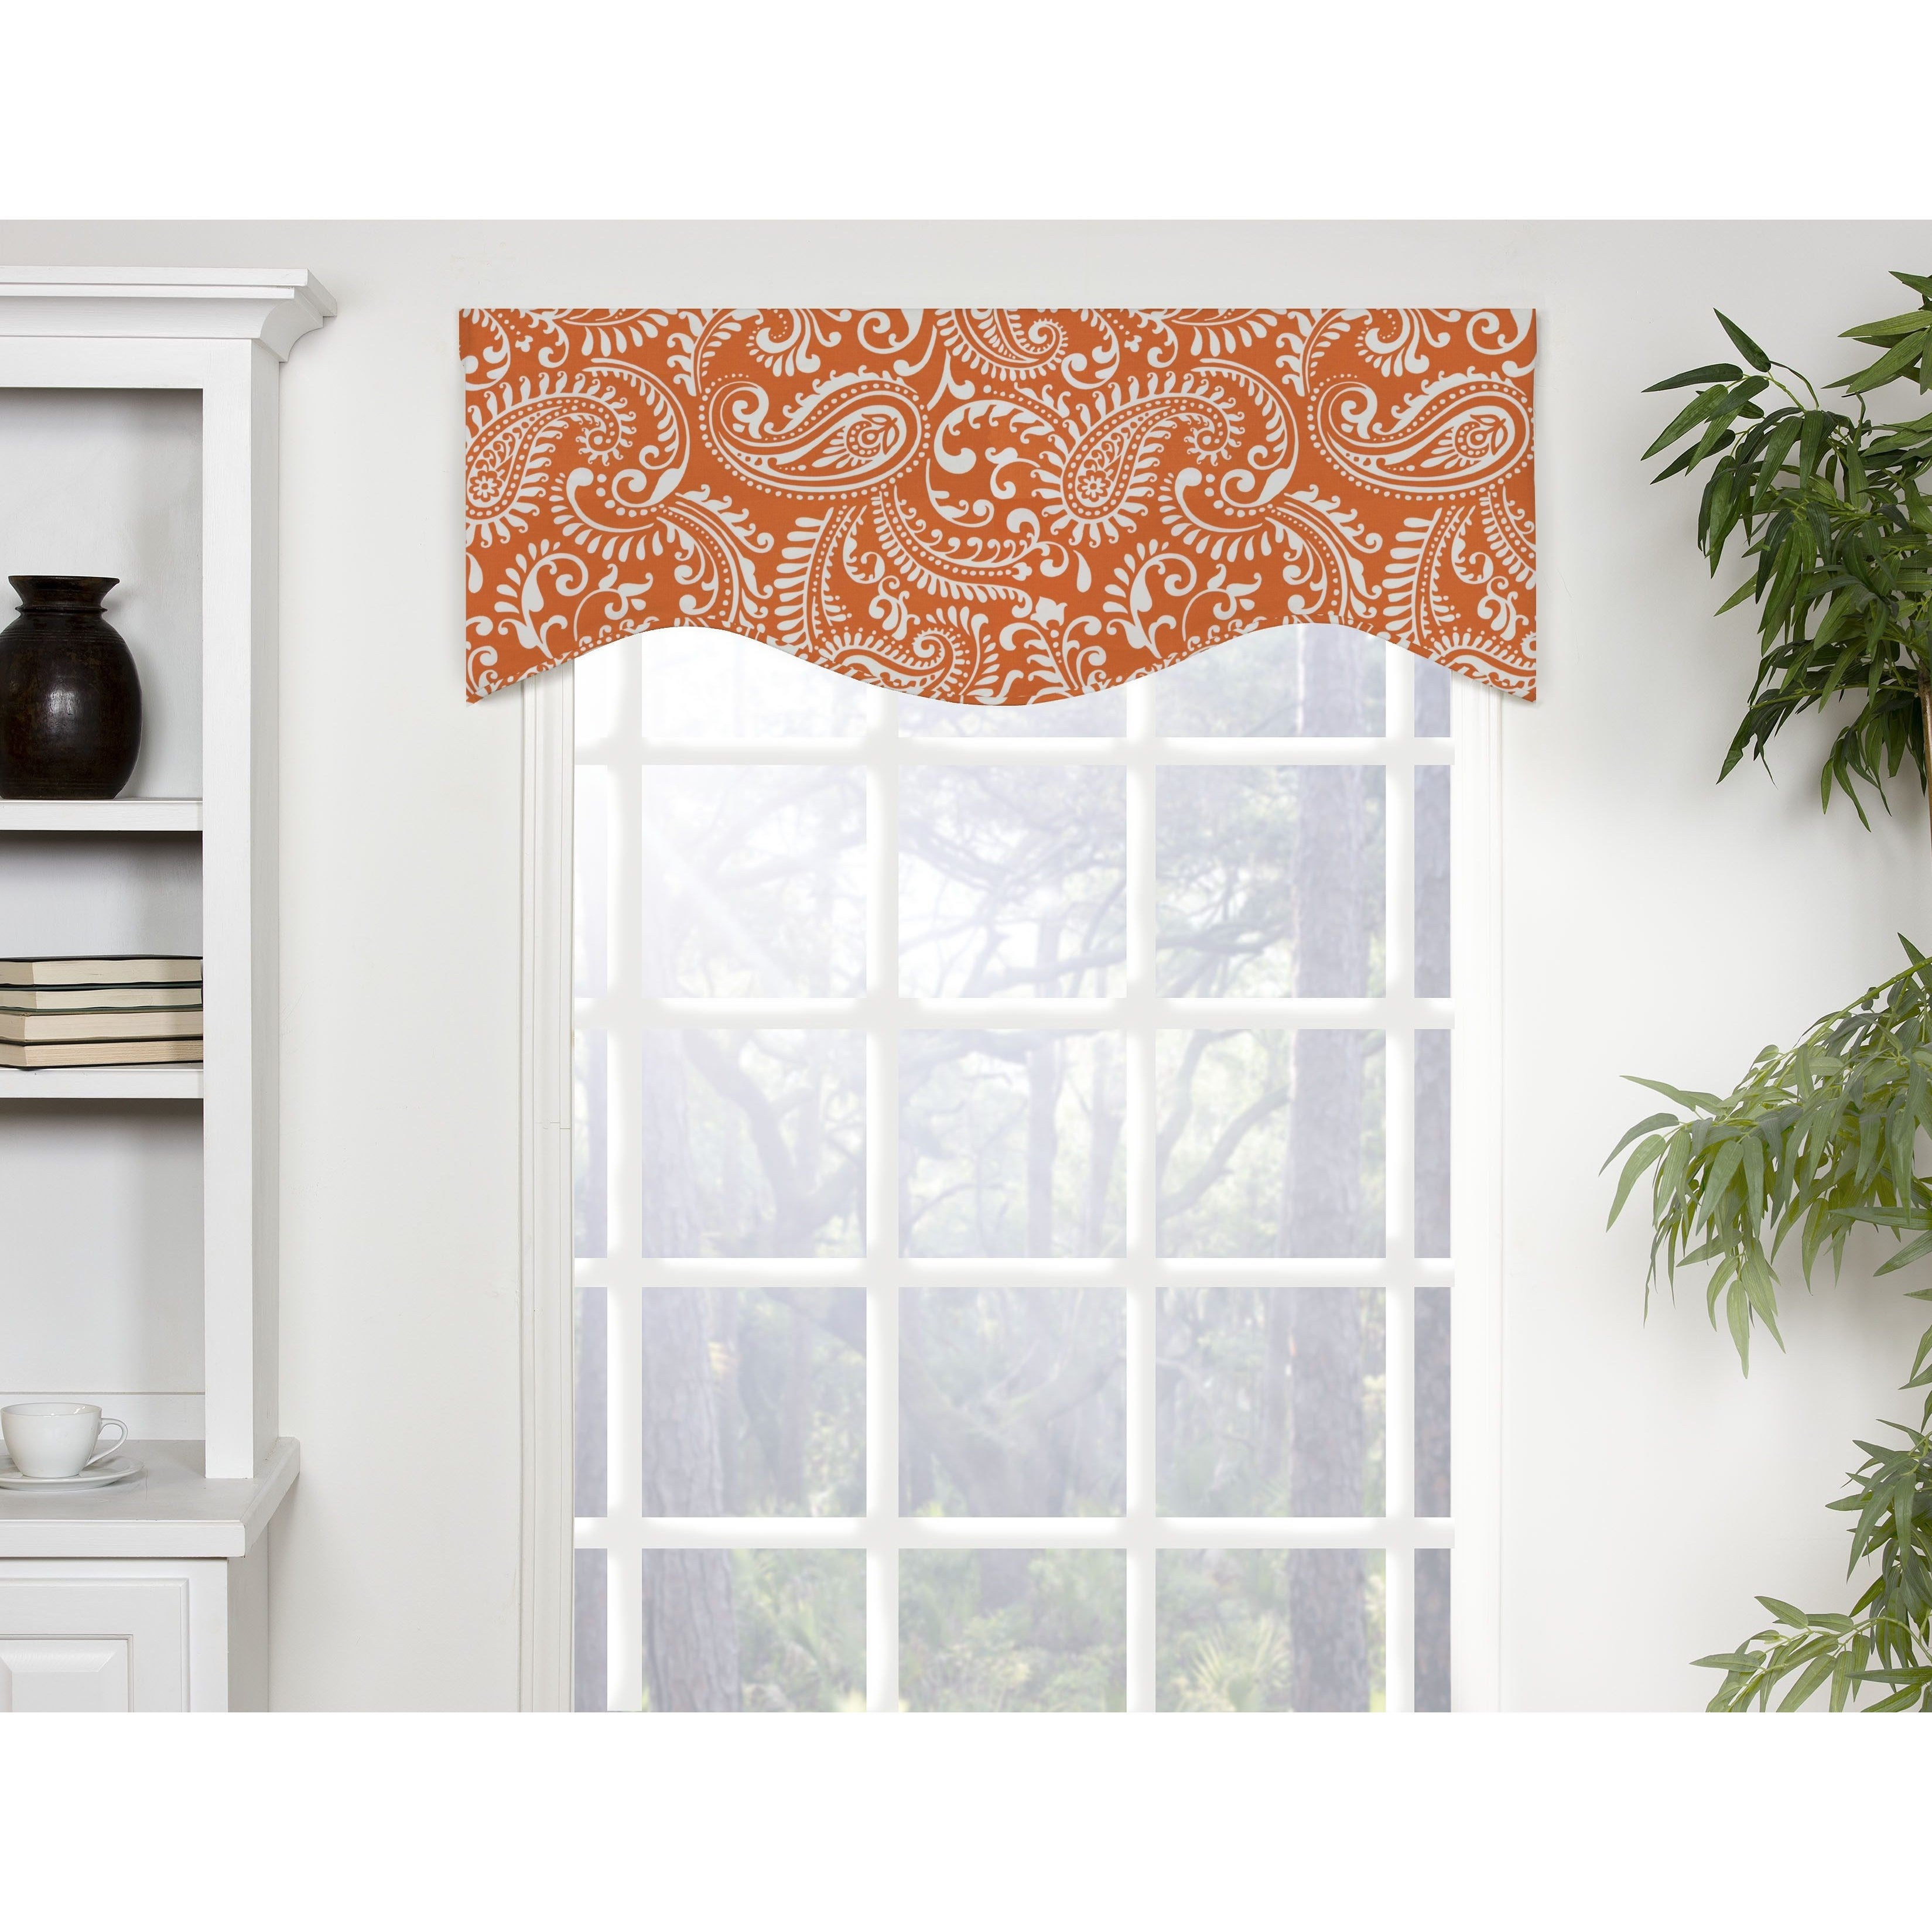 Shop carlo multicolored cotton shaped window valance free shipping today overstock 14221321